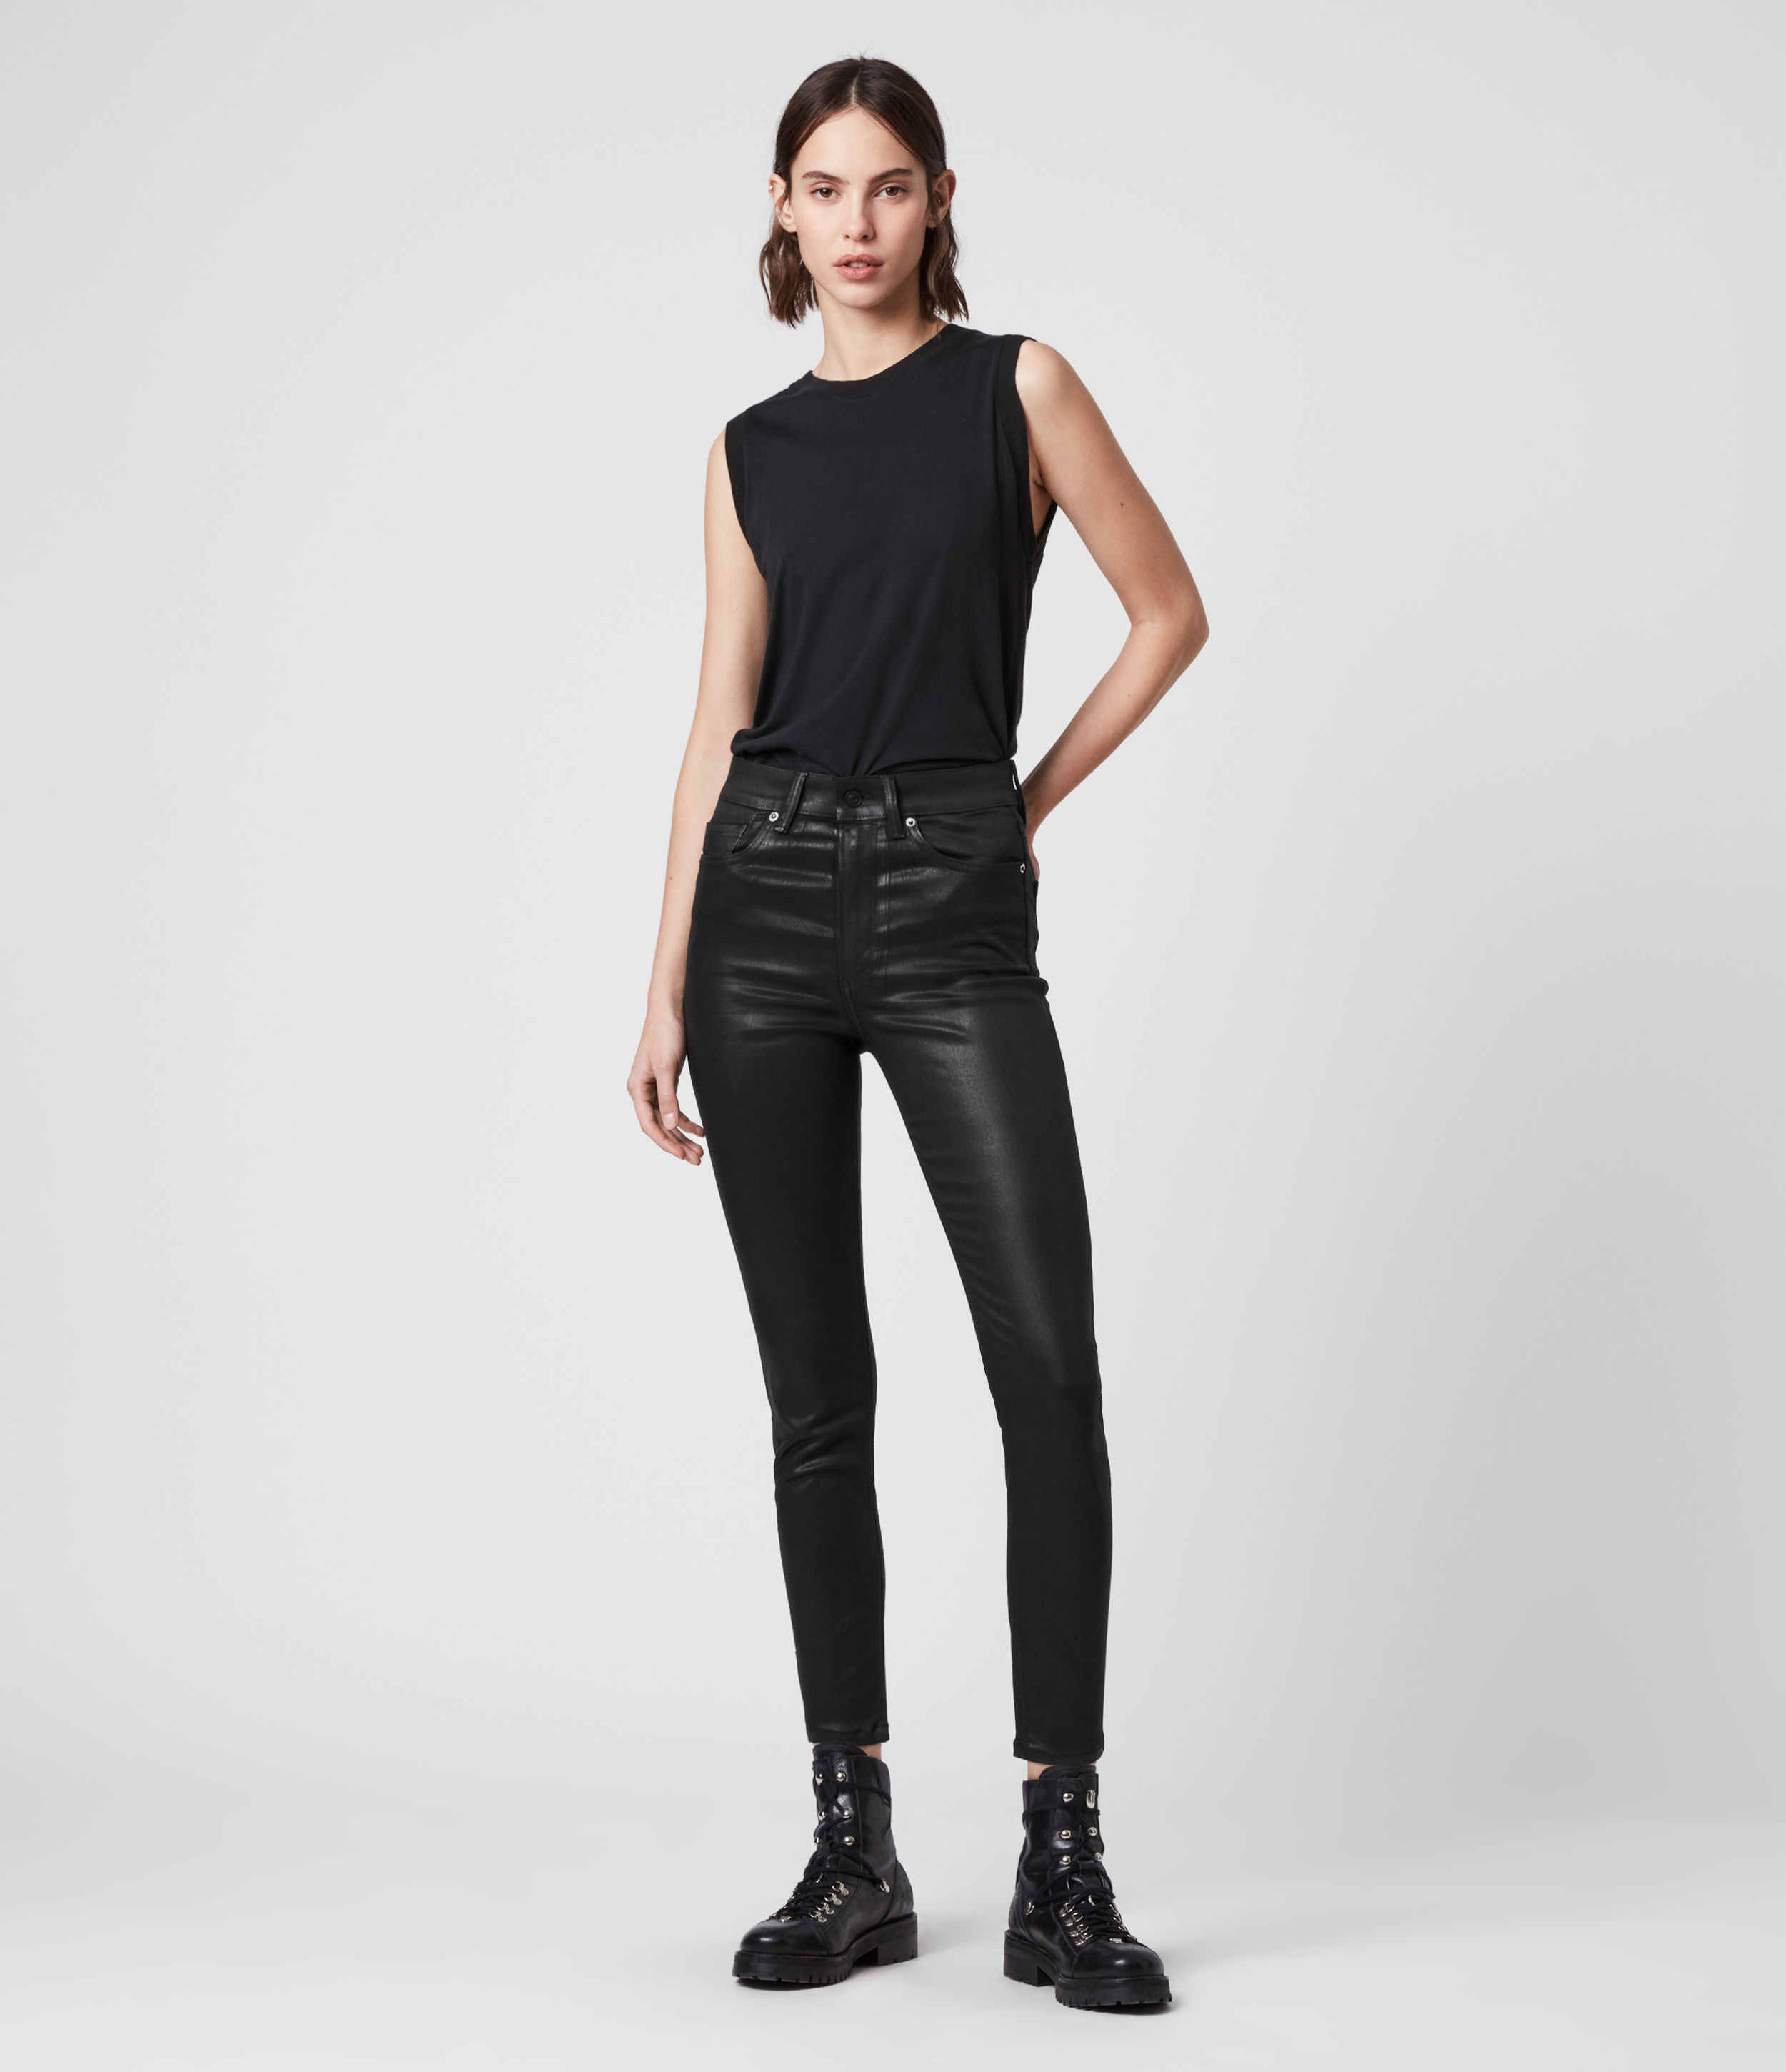 AllSaints Women's Cotton Dax Cropped High-Rise Superstretch Skinny Jeans, Black, Size: 29